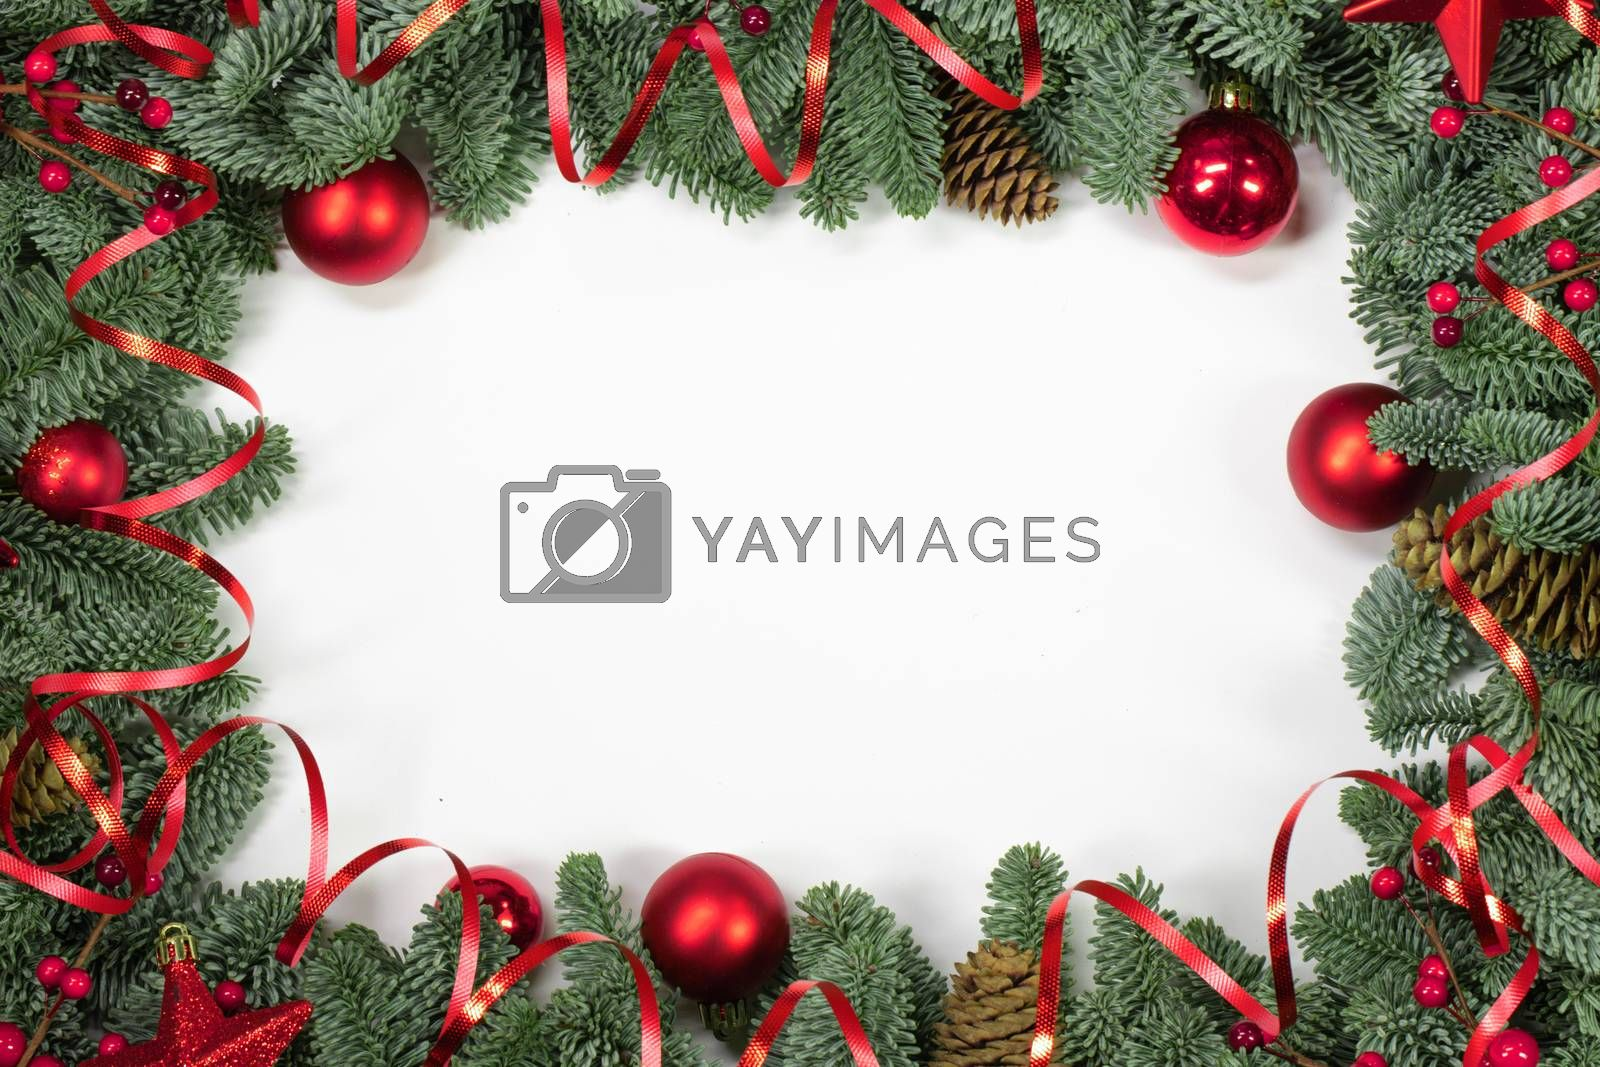 Christmas border frame design copmosition of noble fir tree branch and red decorations balls baubles pine cones isolated on white background